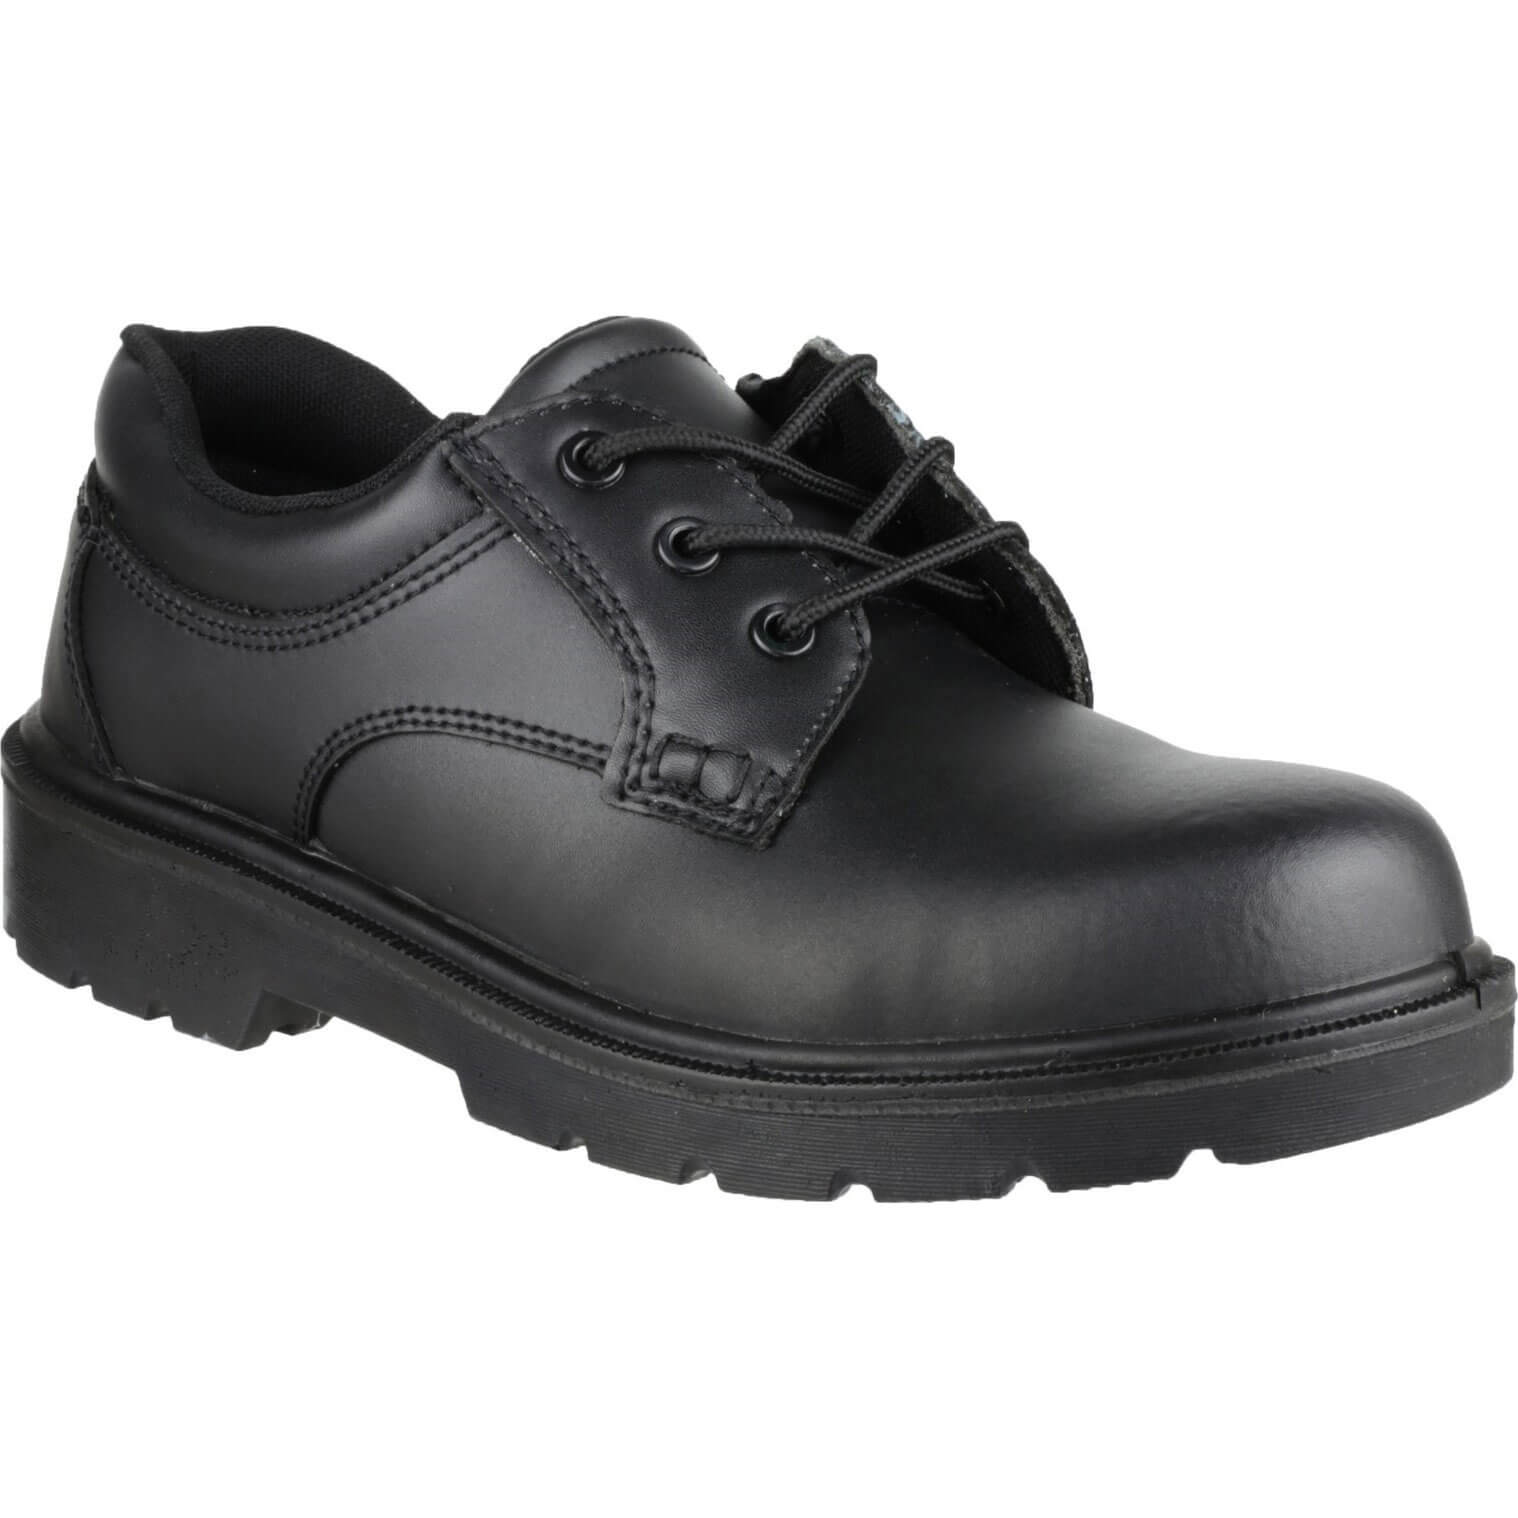 CHEAP Amblers Safety FS38C Metal Free Composite Gibson Lace Safety Shoe Black Size 12 – Men's Footwear